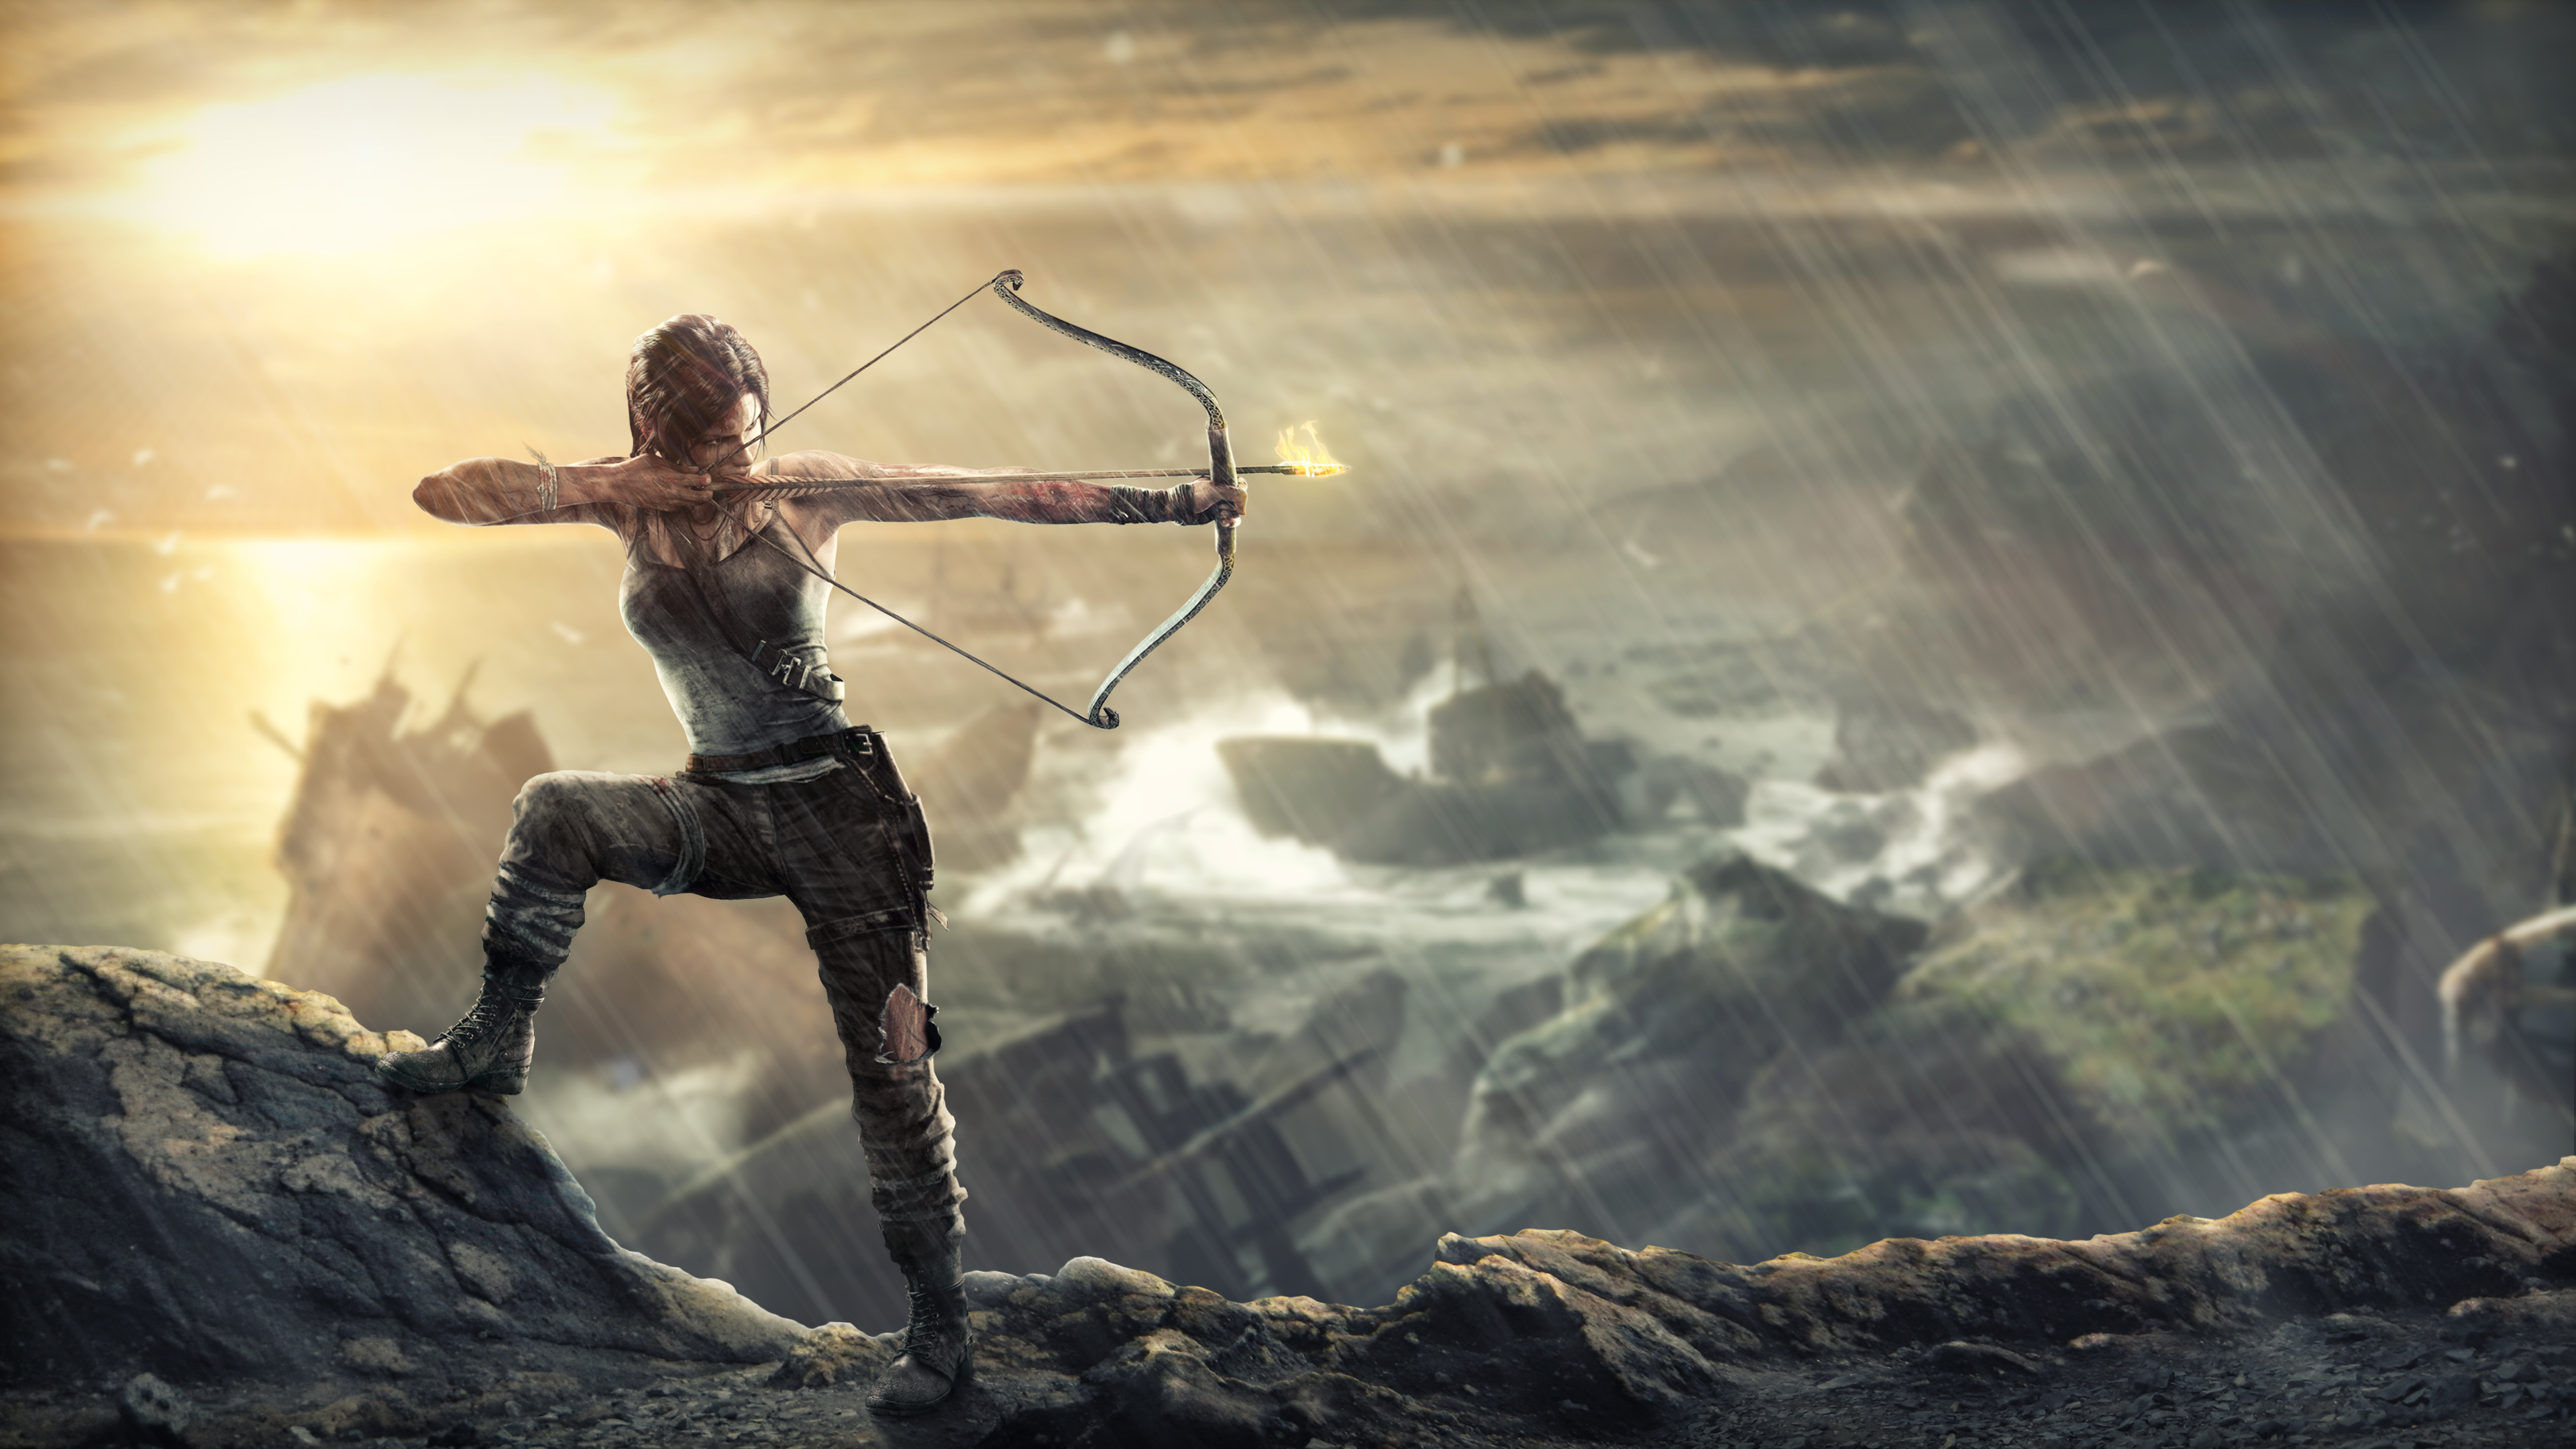 38 Tomb Raider 2013 Hd Wallpapers Background Images